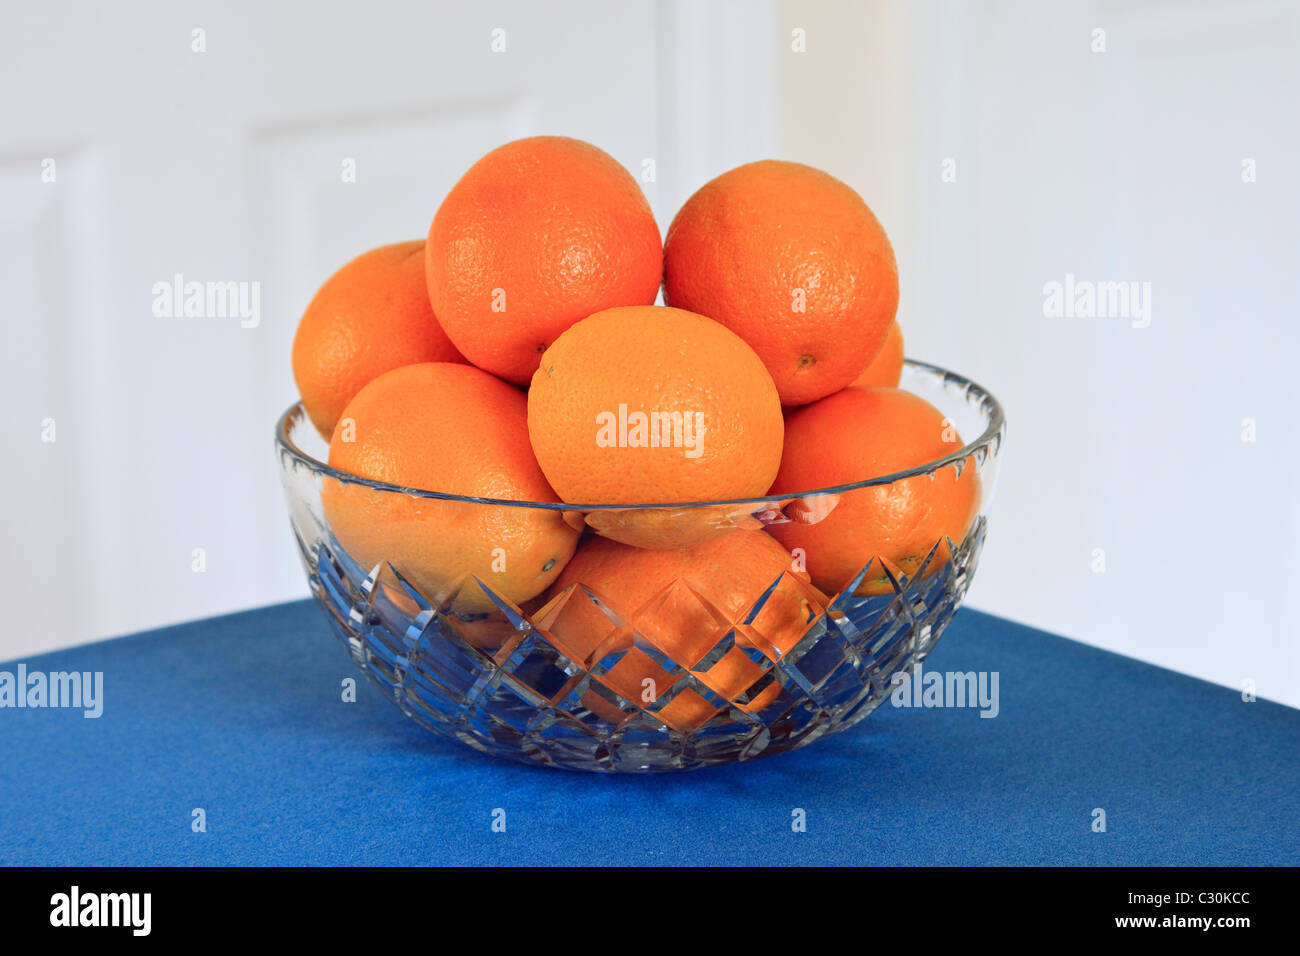 Oranges in a crystal glass fruit bowl on a blue table. UK - Stock Image